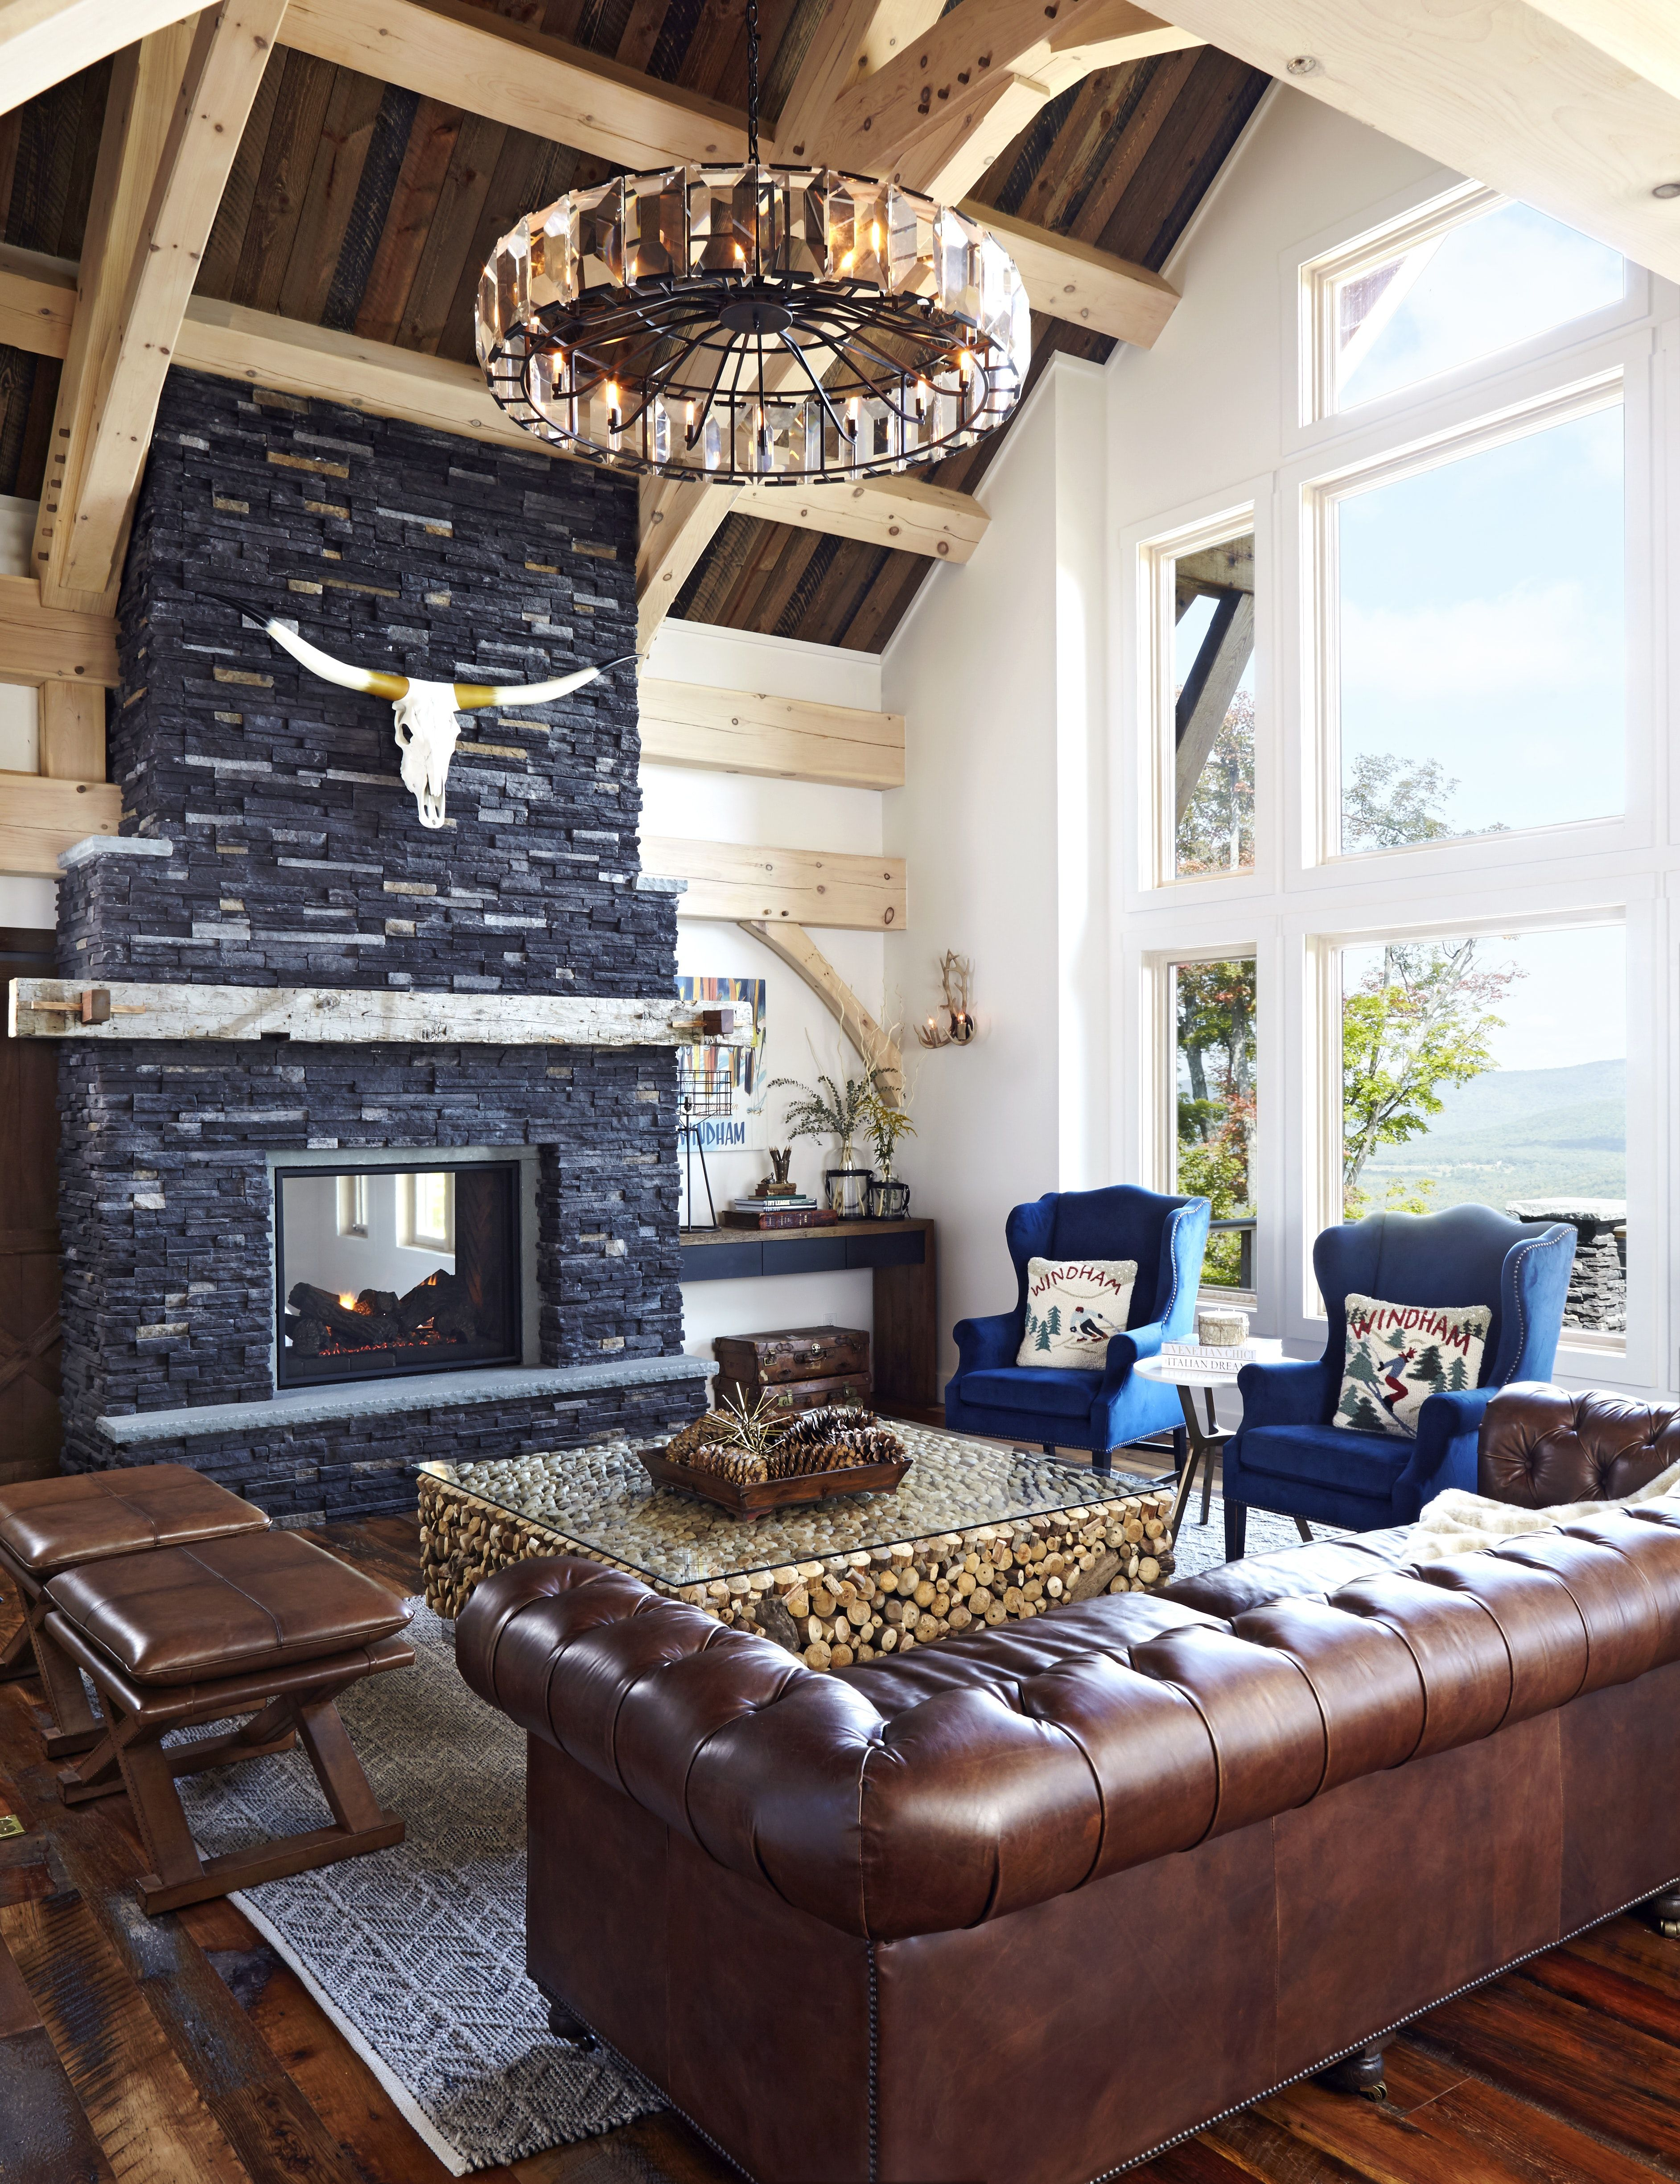 Cool Sunken Living Room Ideas For Your Dreamed House: Windham, NY By Kathy Kuo Designs